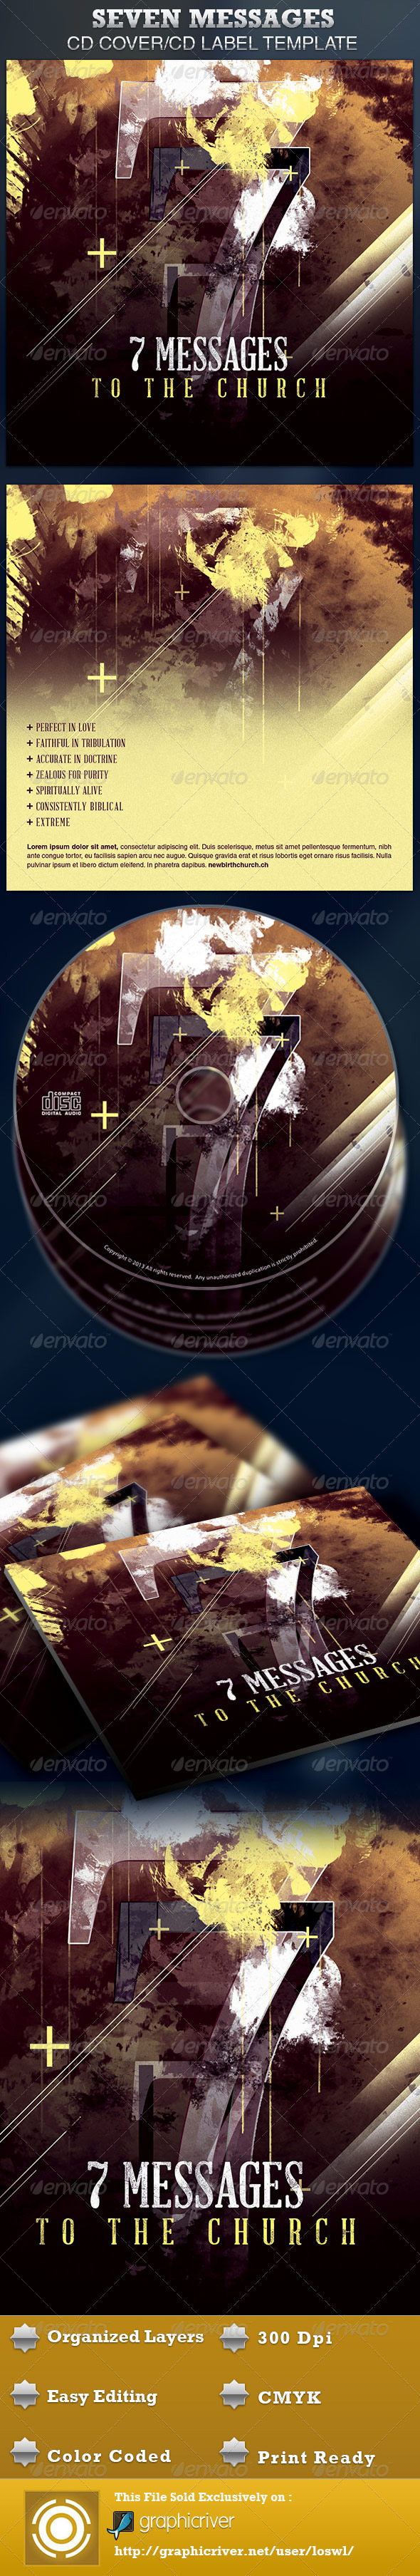 GraphicRiver Seven Messages CD Artwork Template 4114691